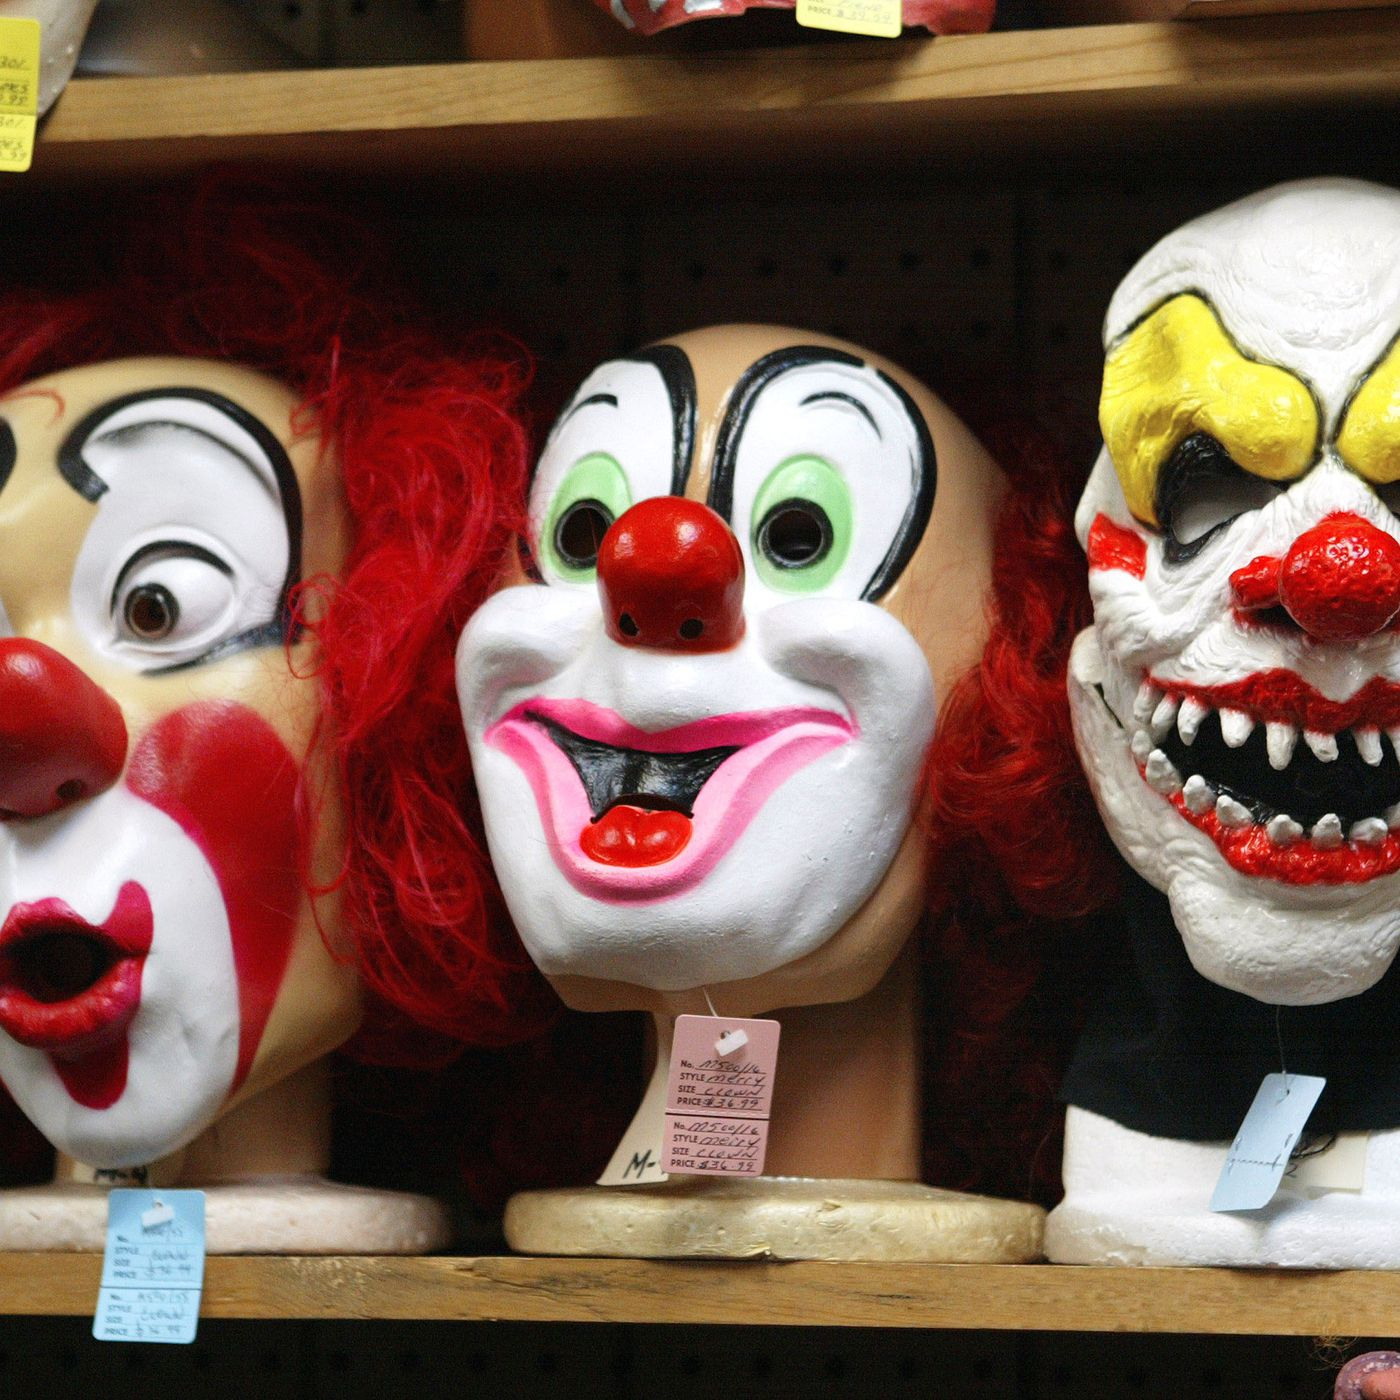 The great clown panic of 2016 is a hoax  But the terrifying